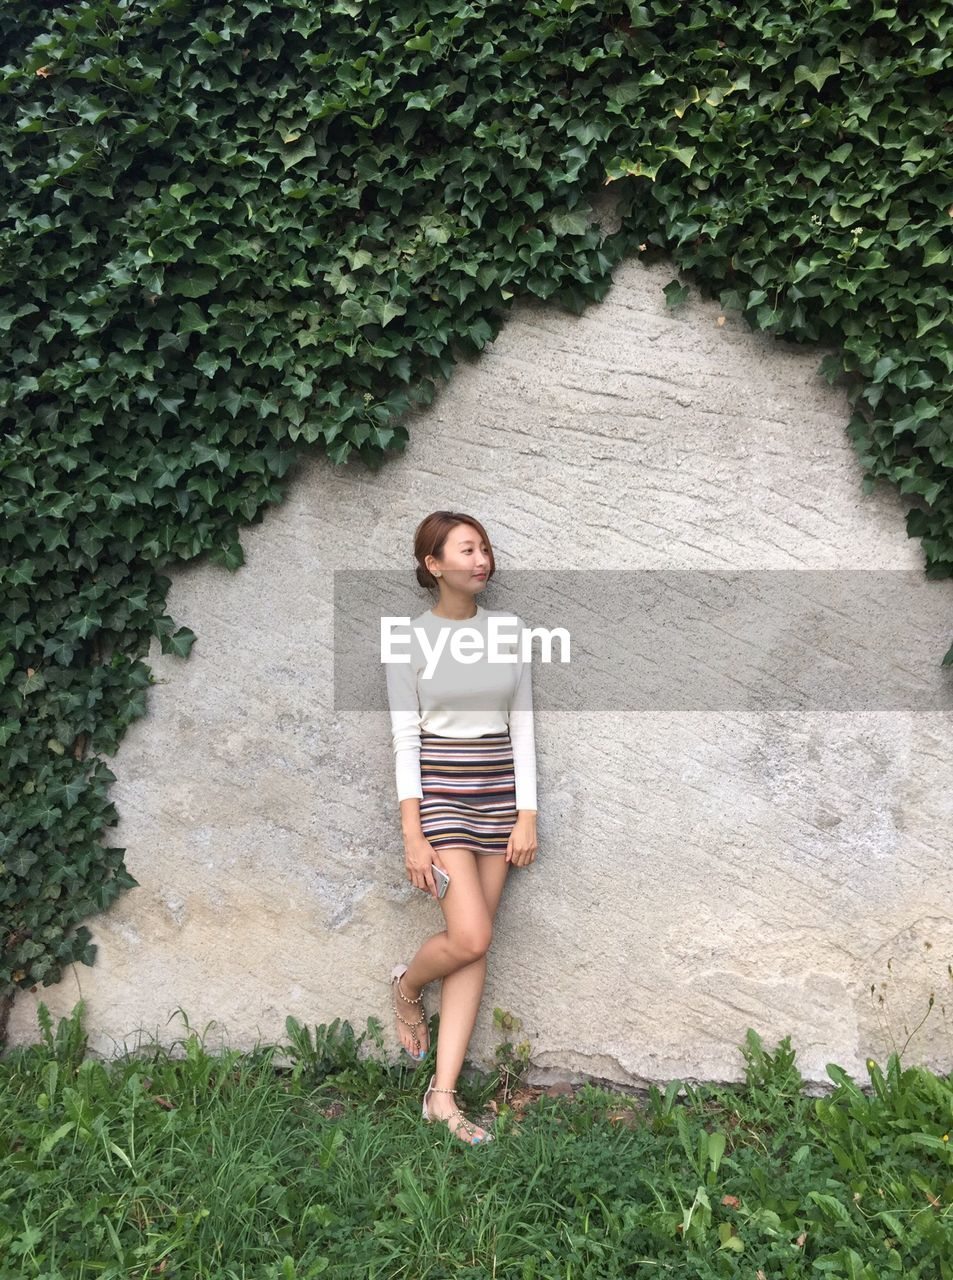 Young woman standing against wall with ivy